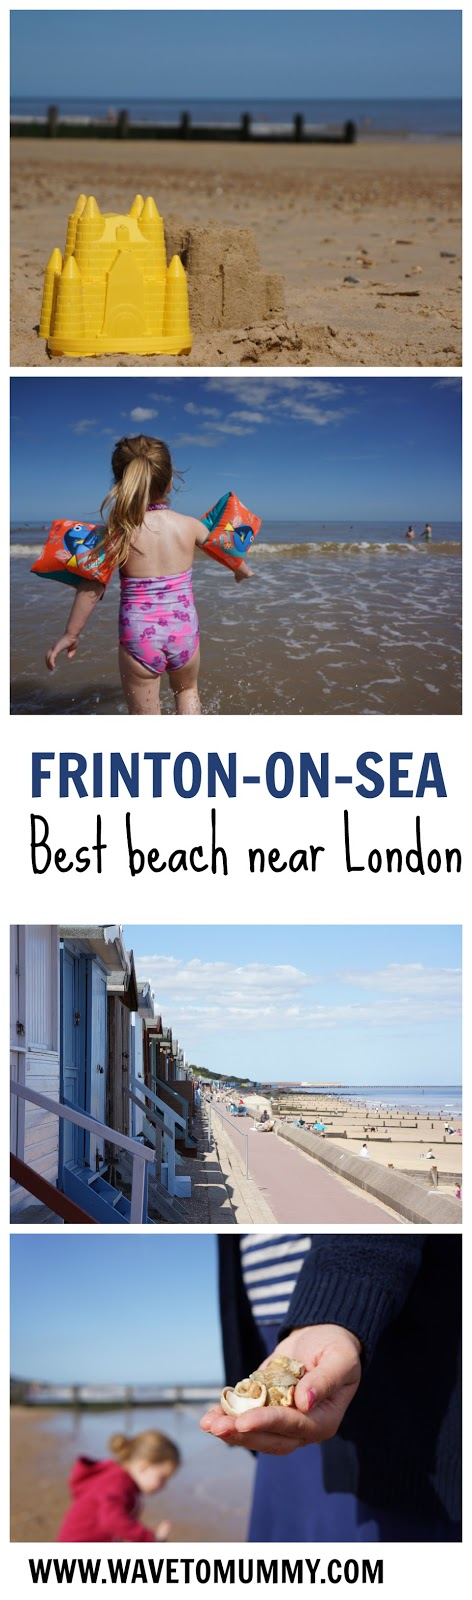 A beautiful family friendly beach near London - Frinton-on-Sea. This is our new favourite beach near London - a sandy beach and lack of commercialisation. Have a look at the pictures of Frinton-on-sea beach front and get some tips on what to expect at Frinton seaside.